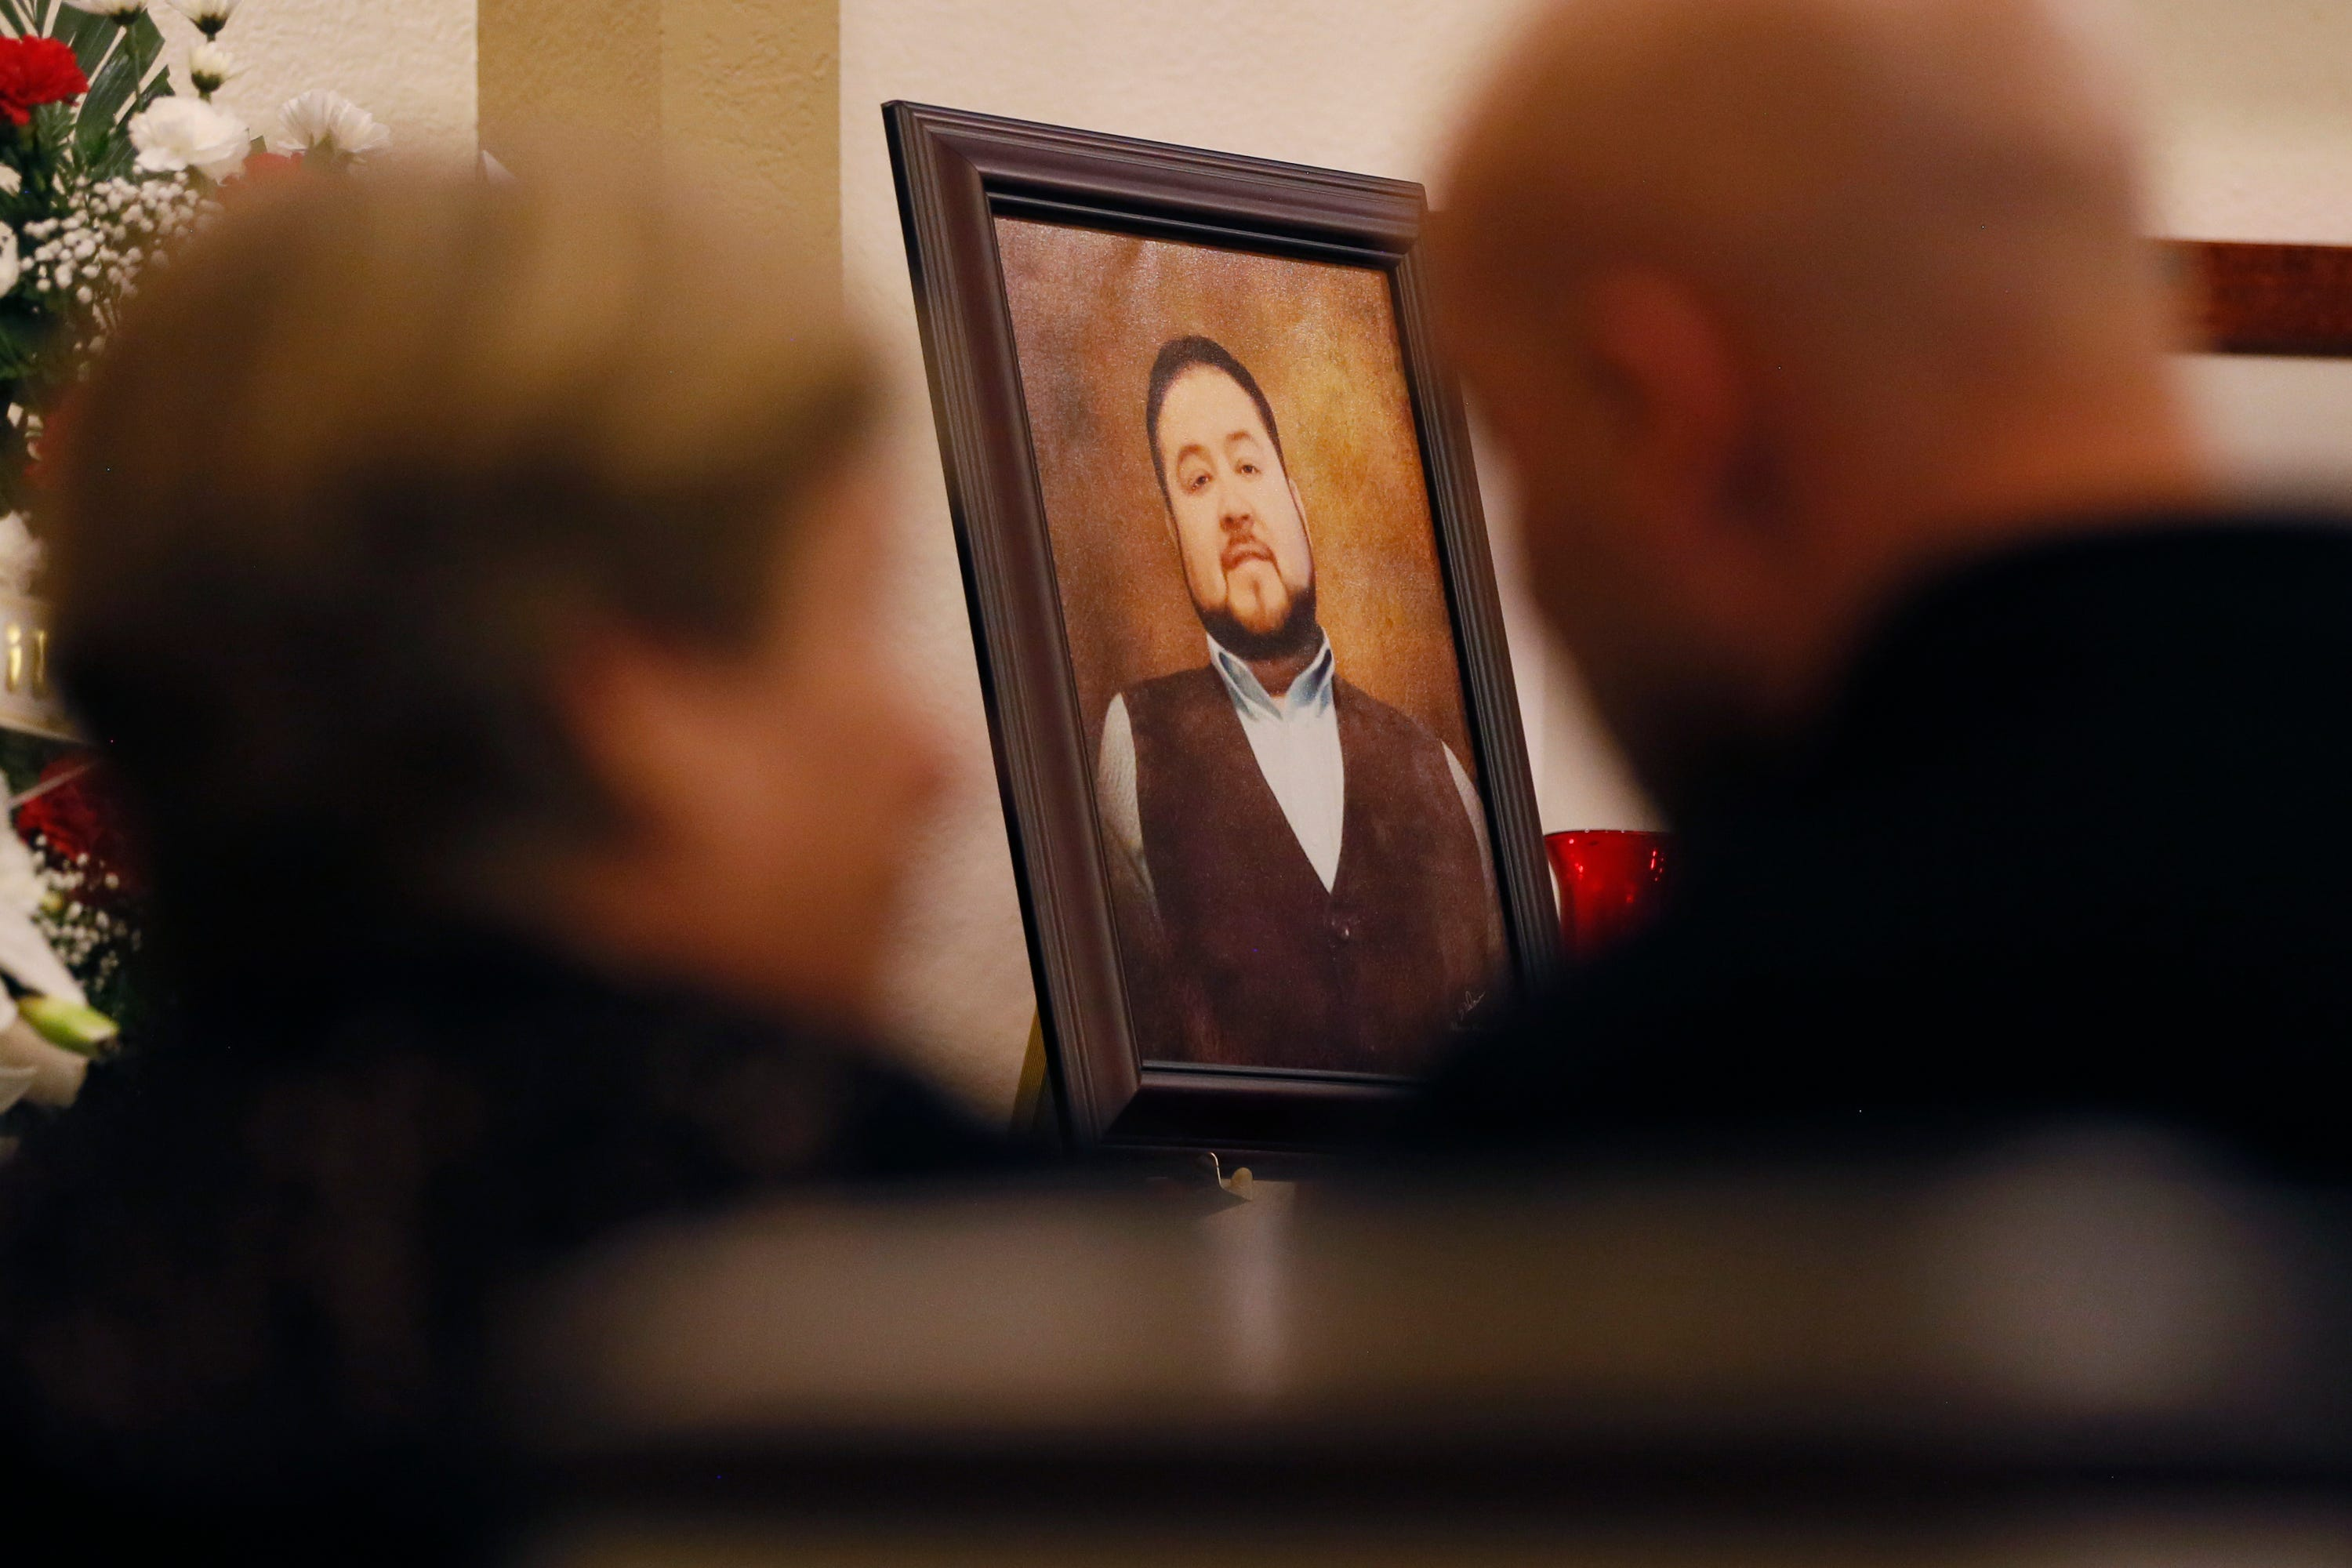 Friends and family attend a service for Leonardo Campos on Thursday, Aug. 8, 2019, at Sunset Funeral Home in El Paso. Campos was one of 22 people killed in the shooting at Walmart on Aug. 3, 2019.